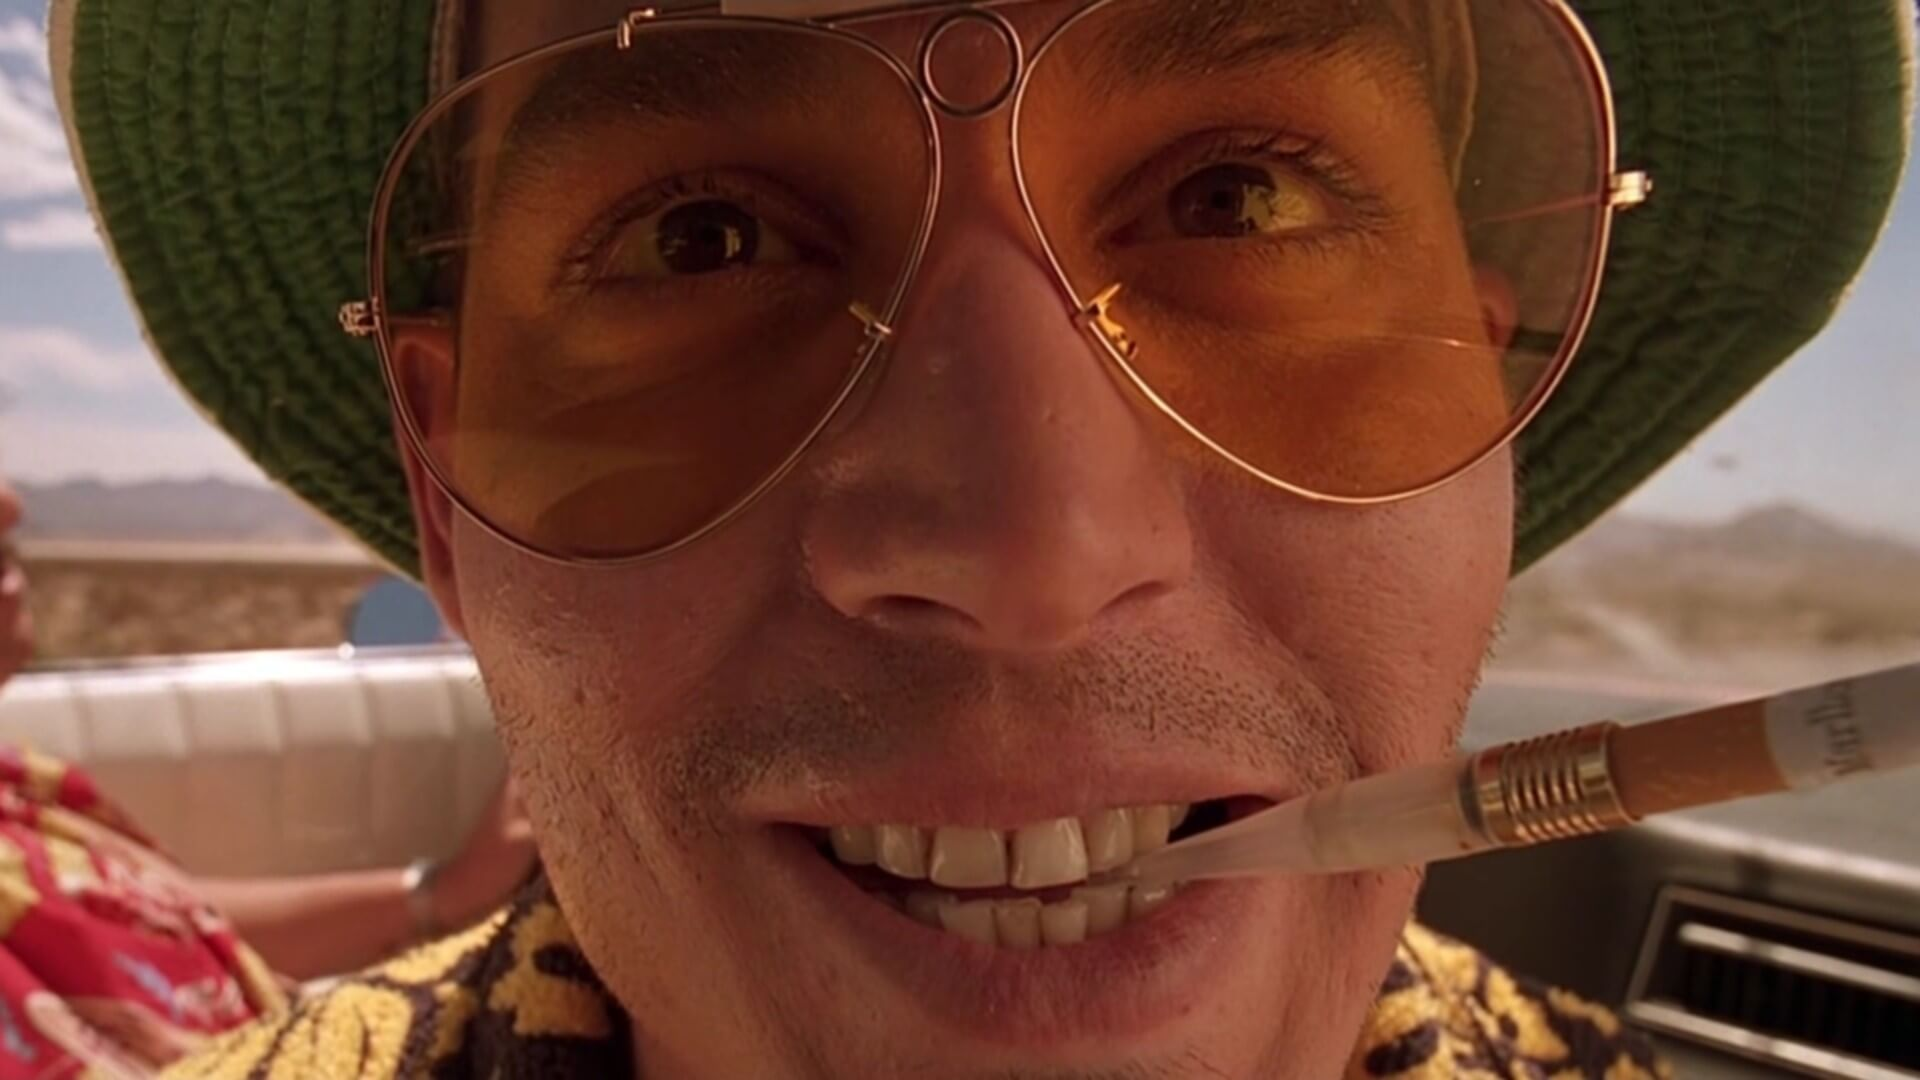 a review of the film fear and loathing in las vegas